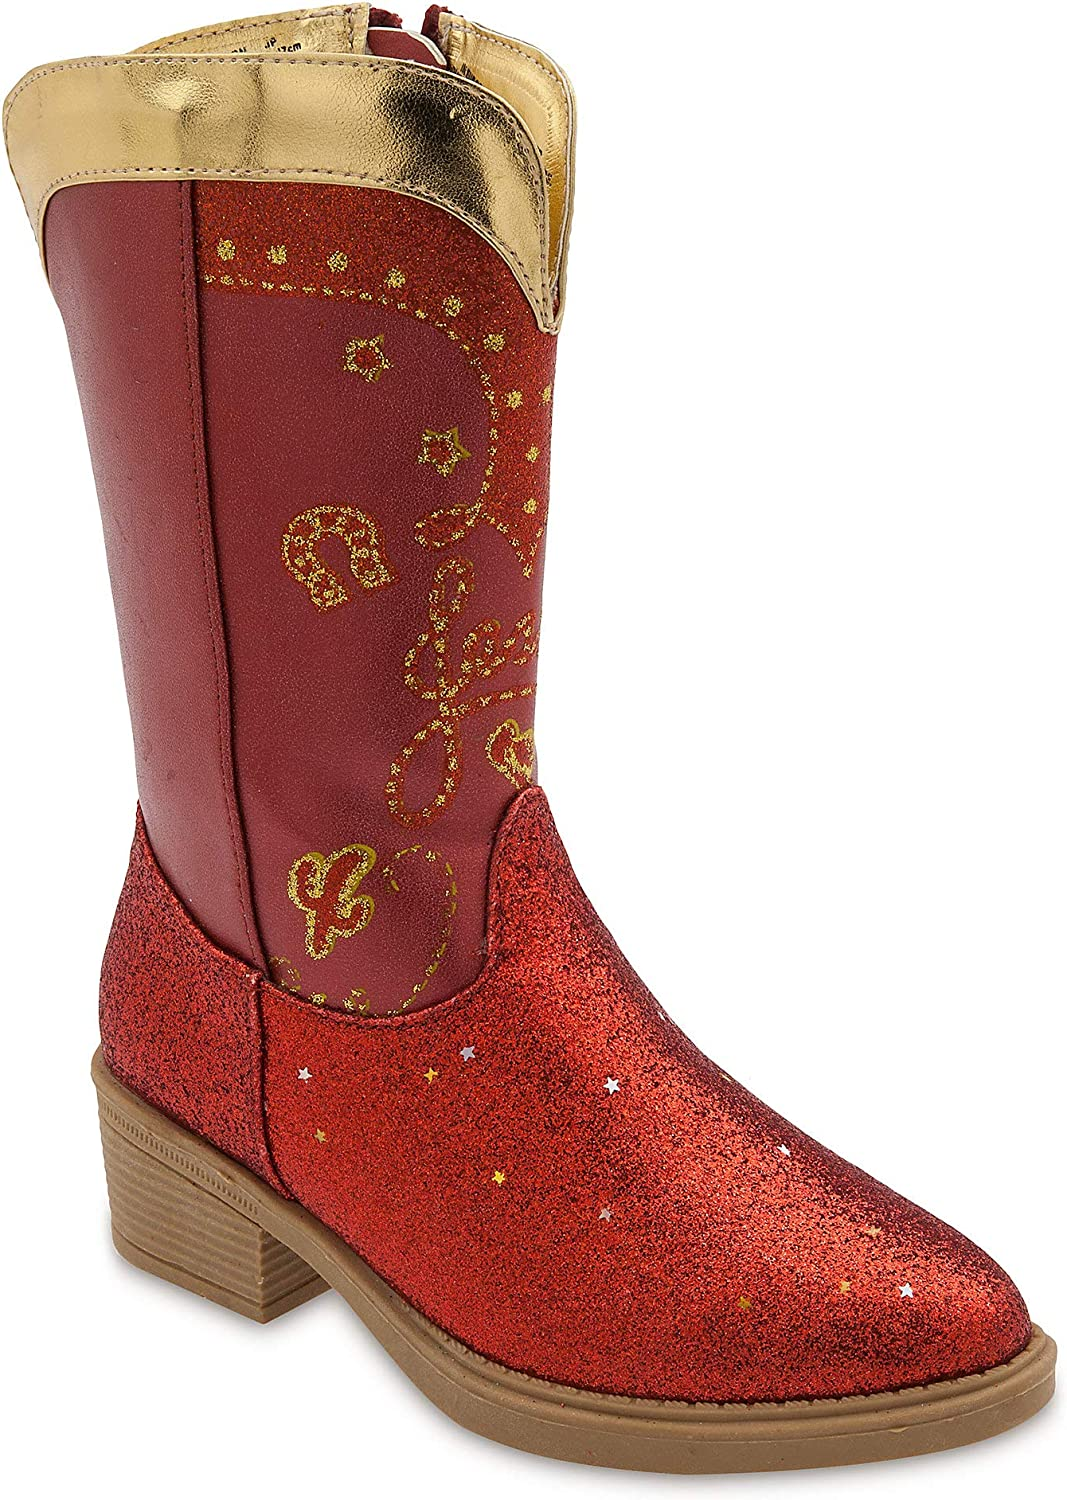 Disney Jessie Cowgirl Boots New popularity Award Multi Kids for